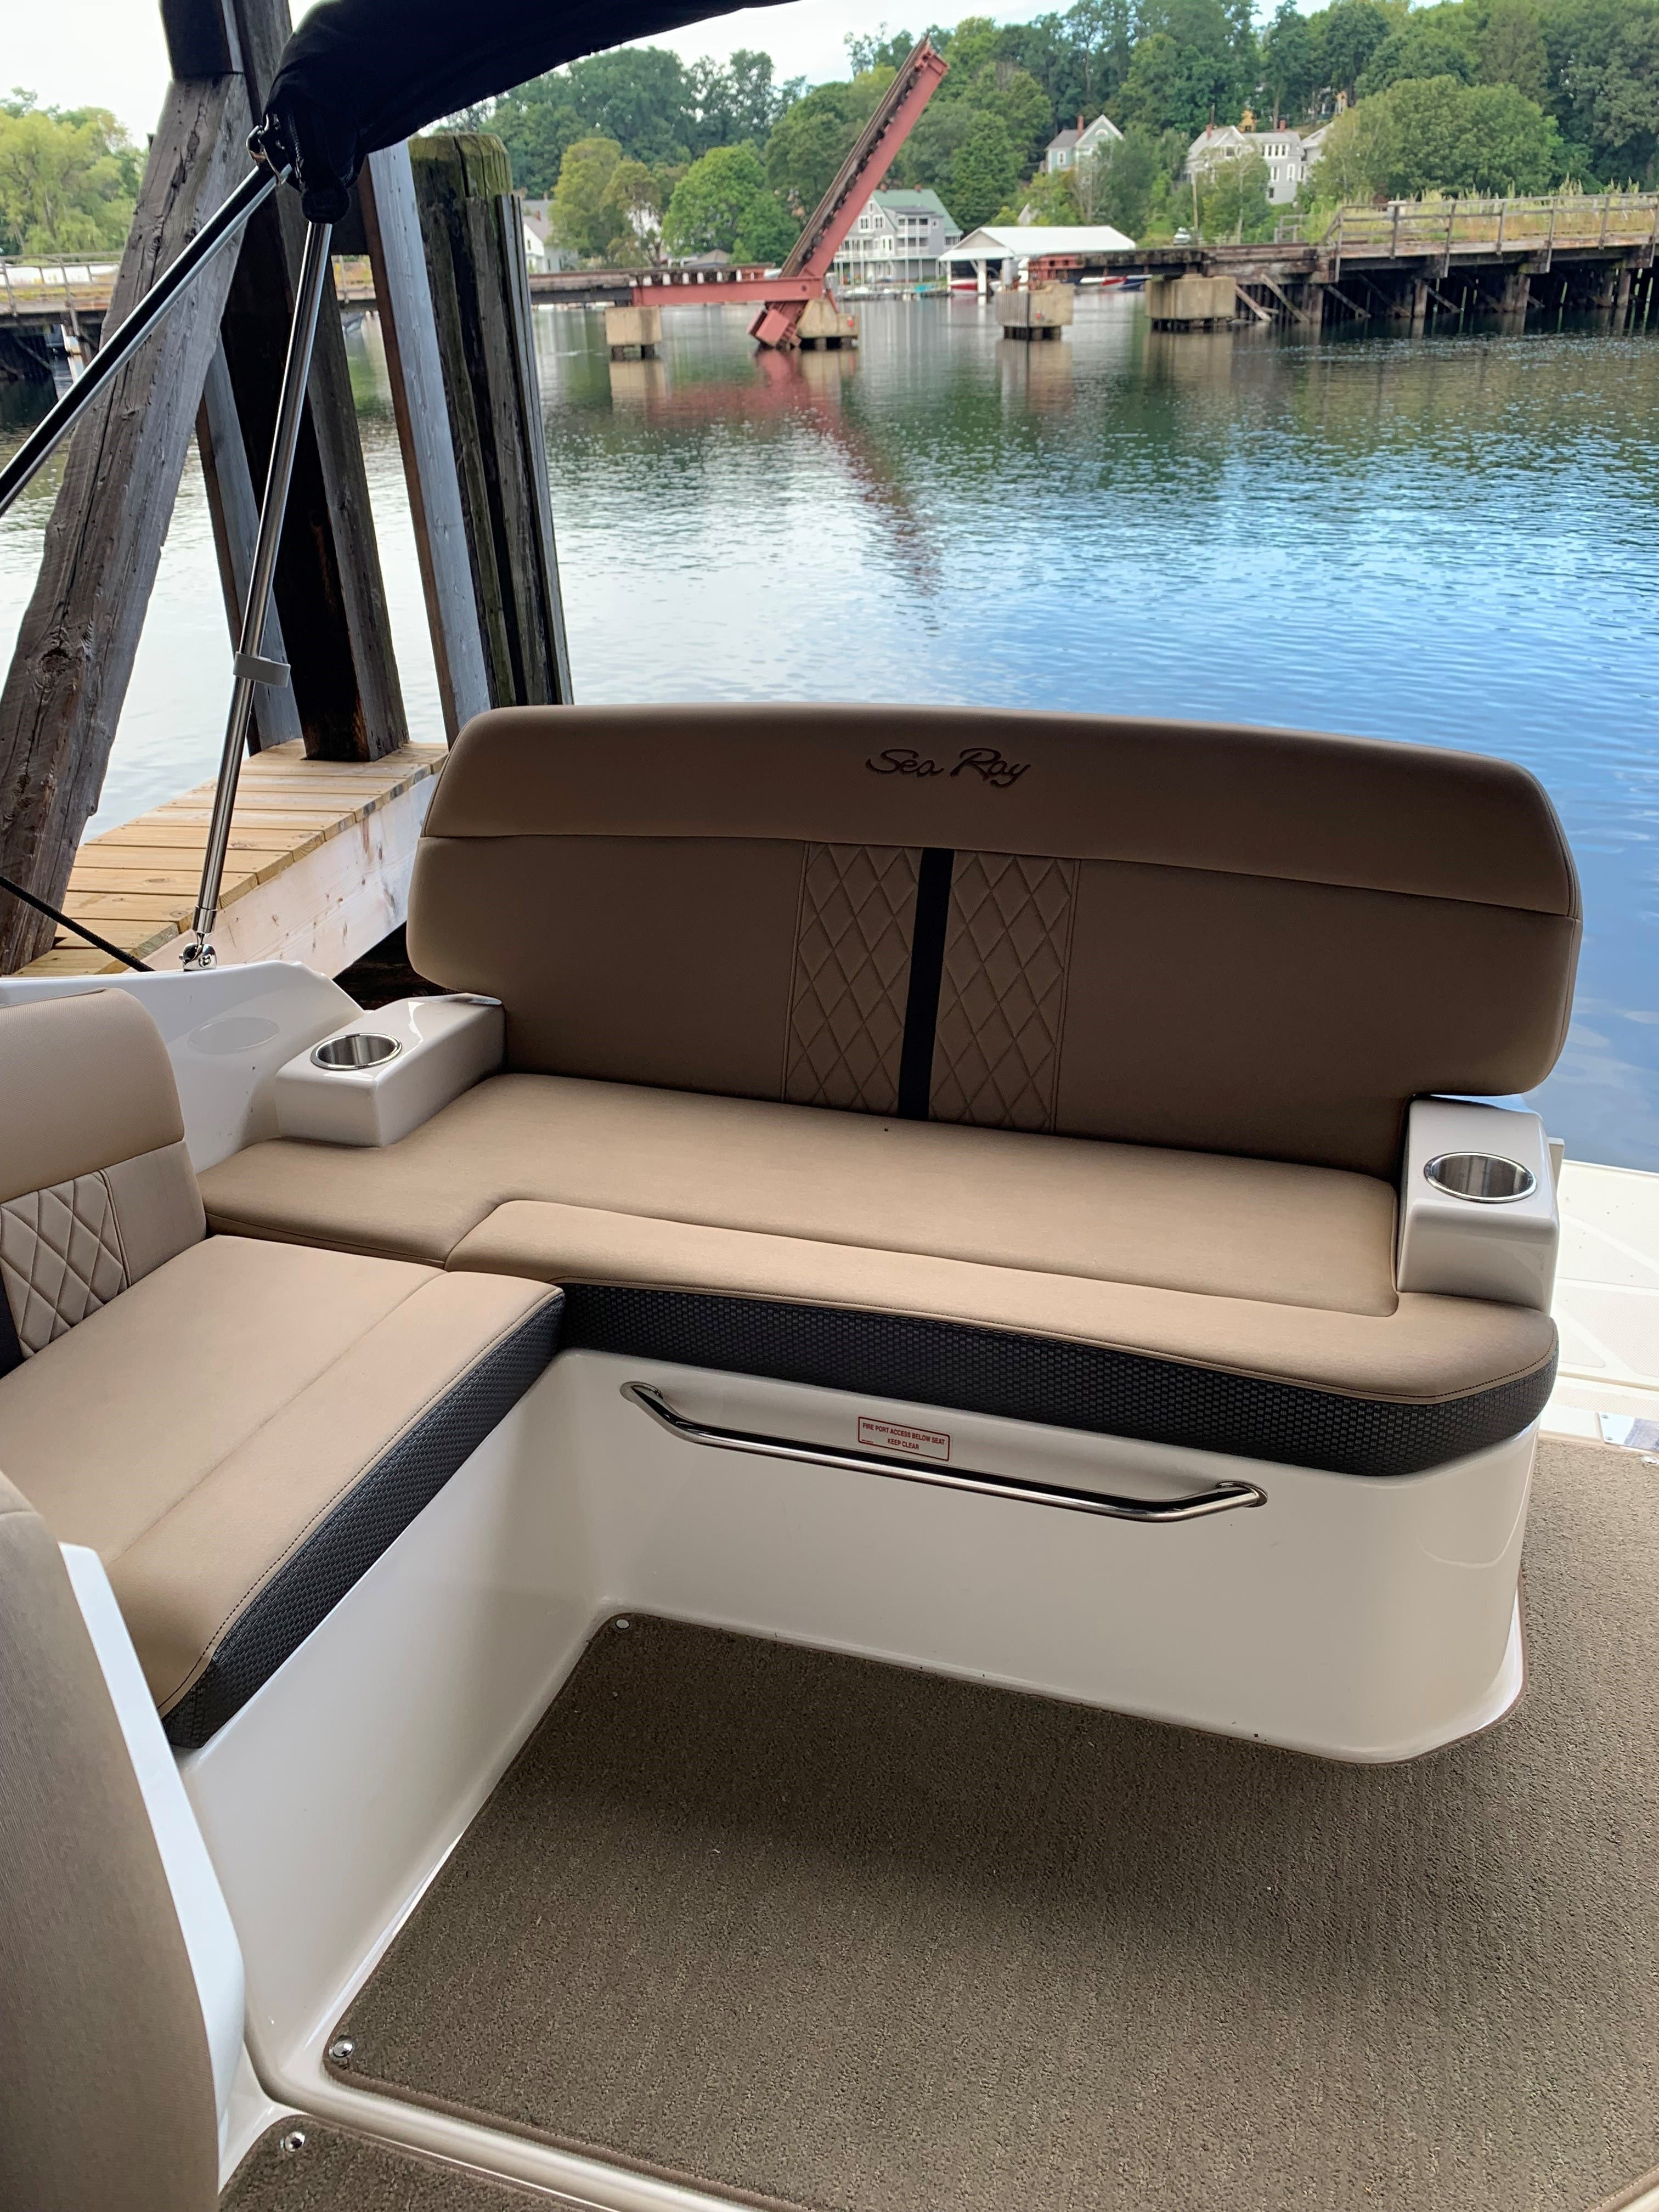 2016 Sea Ray boat for sale, model of the boat is 260 SUNDANCER & Image # 3 of 9